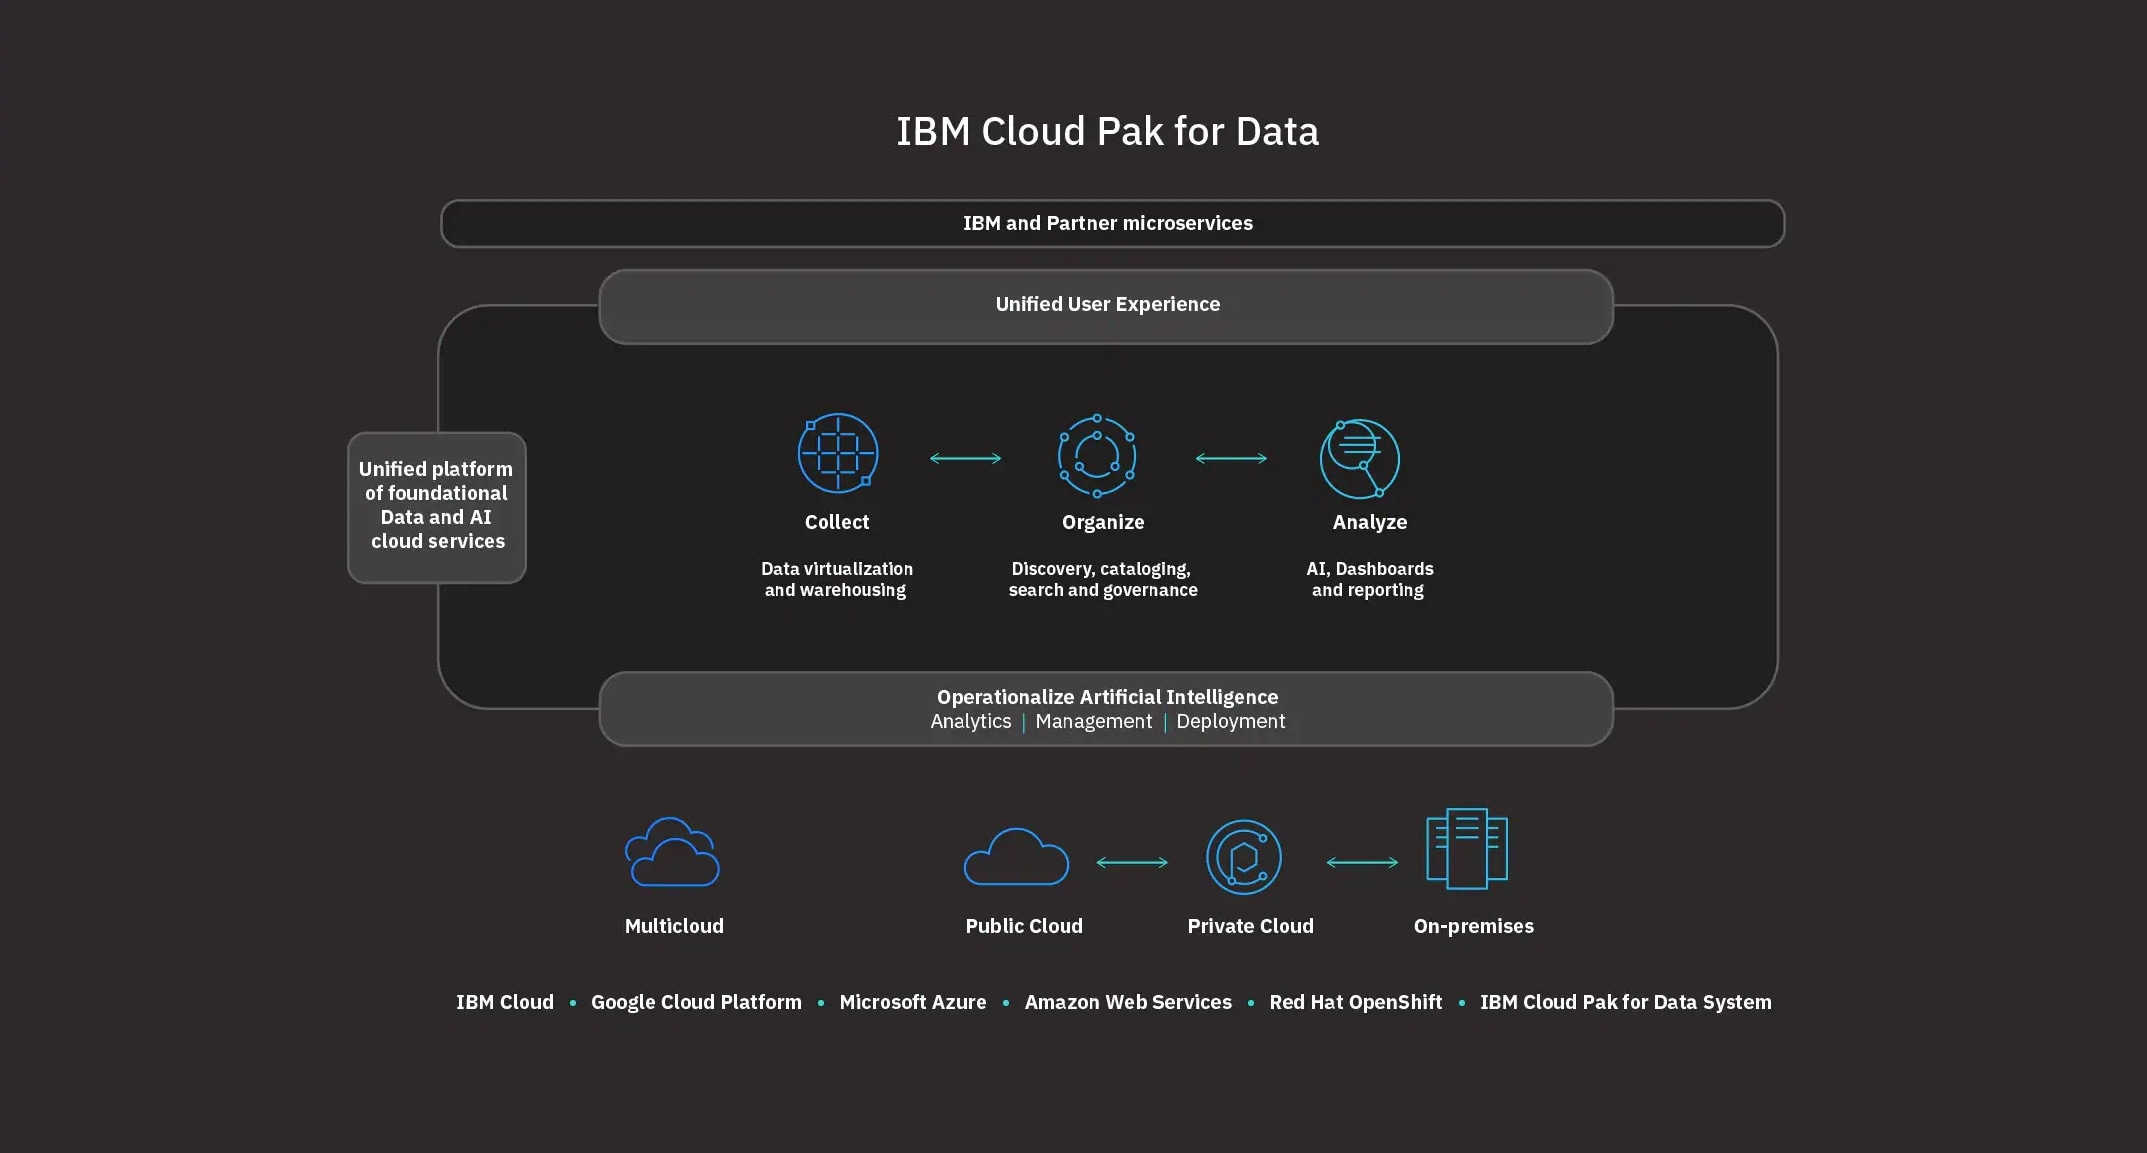 Présentation du produit IBM Cloud Pak for Data 3.0